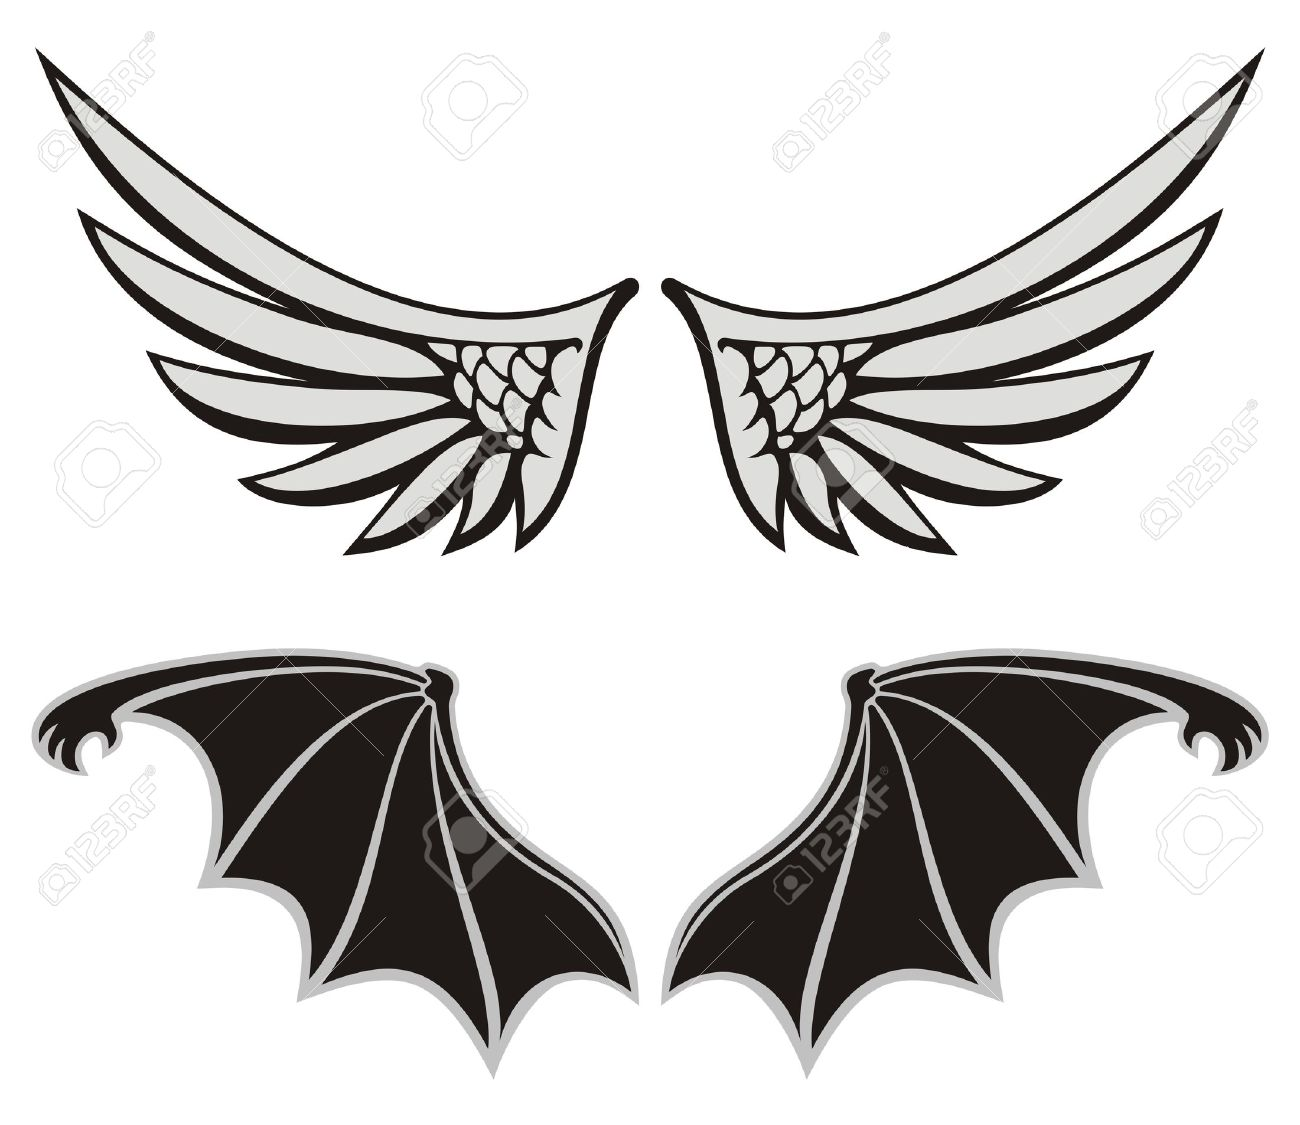 Symmetric wing shaped design elements on white background, angel and devil wings. - 9448169